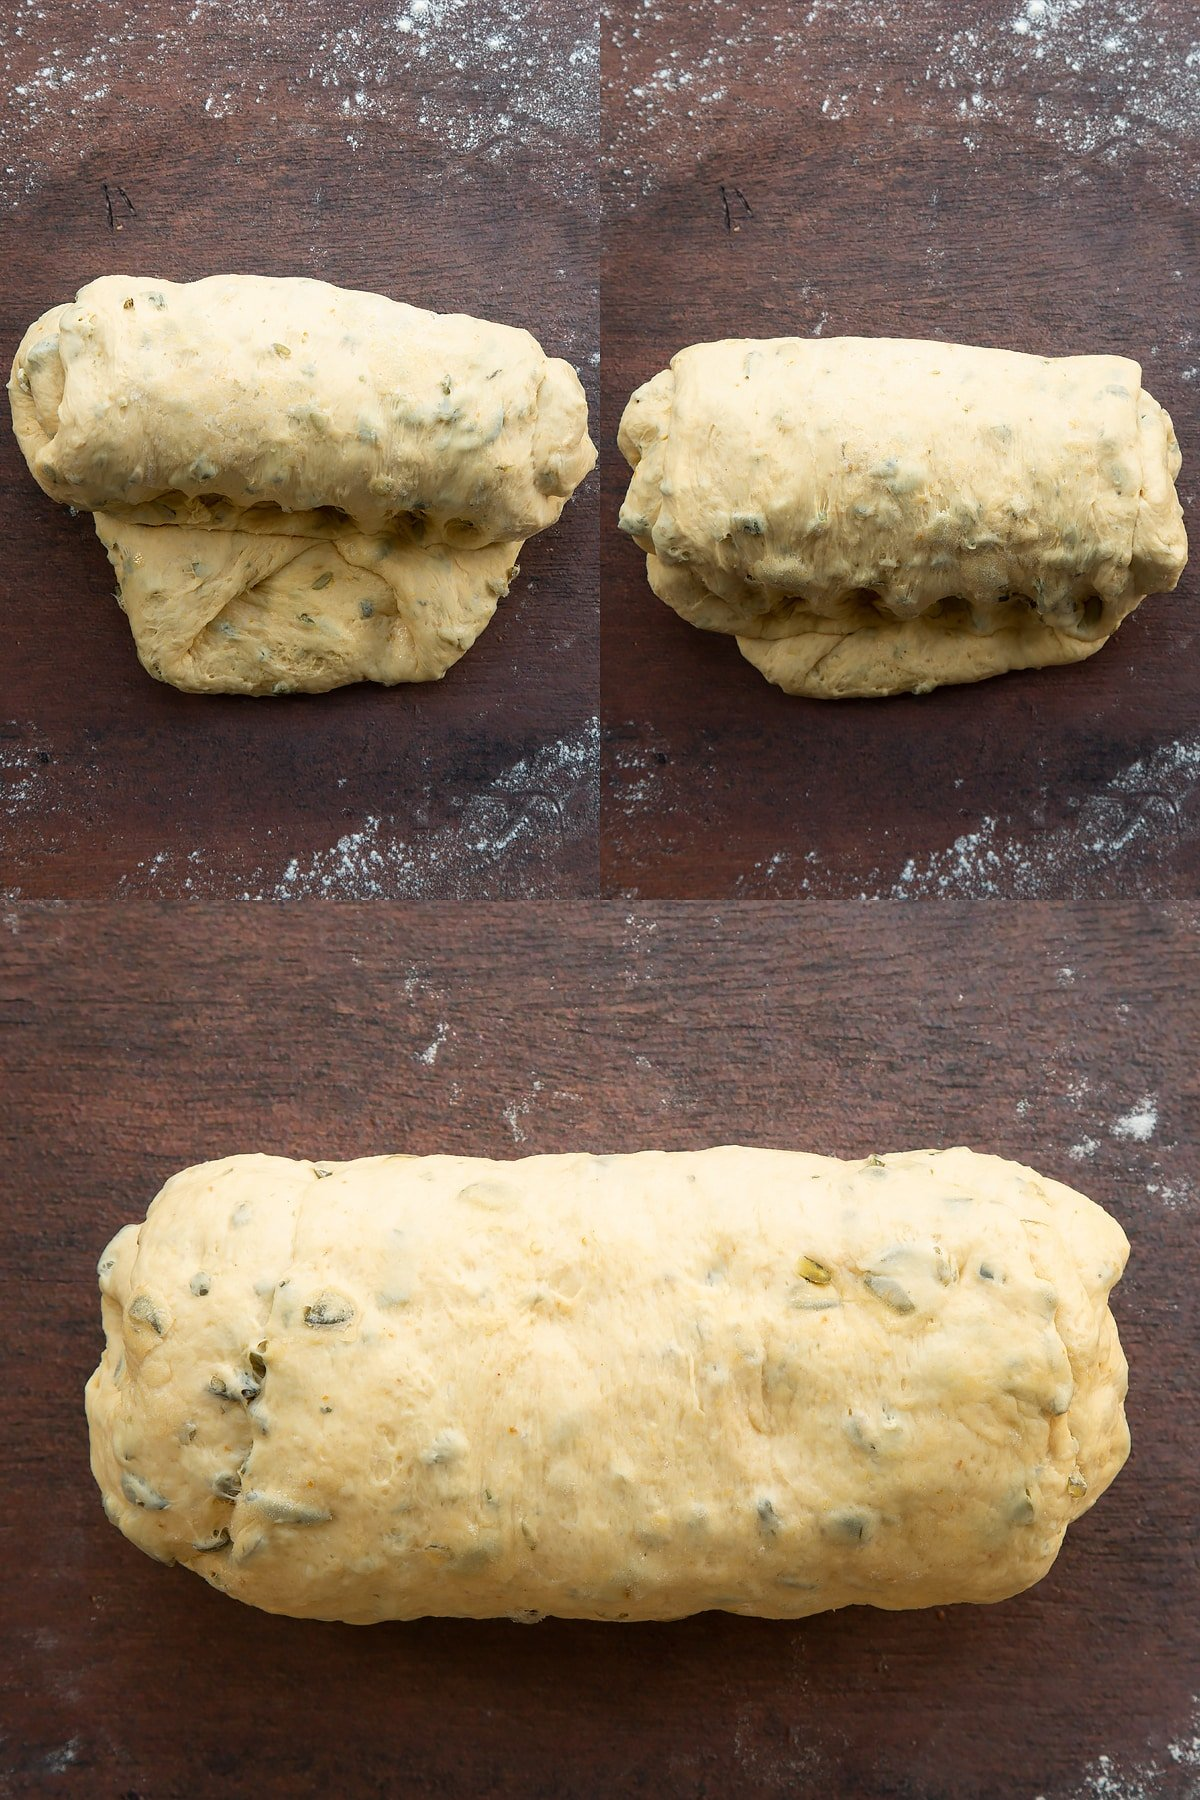 Collage of images showing pumpkin seed bread dough being shaped into a sausage on a floured surface.